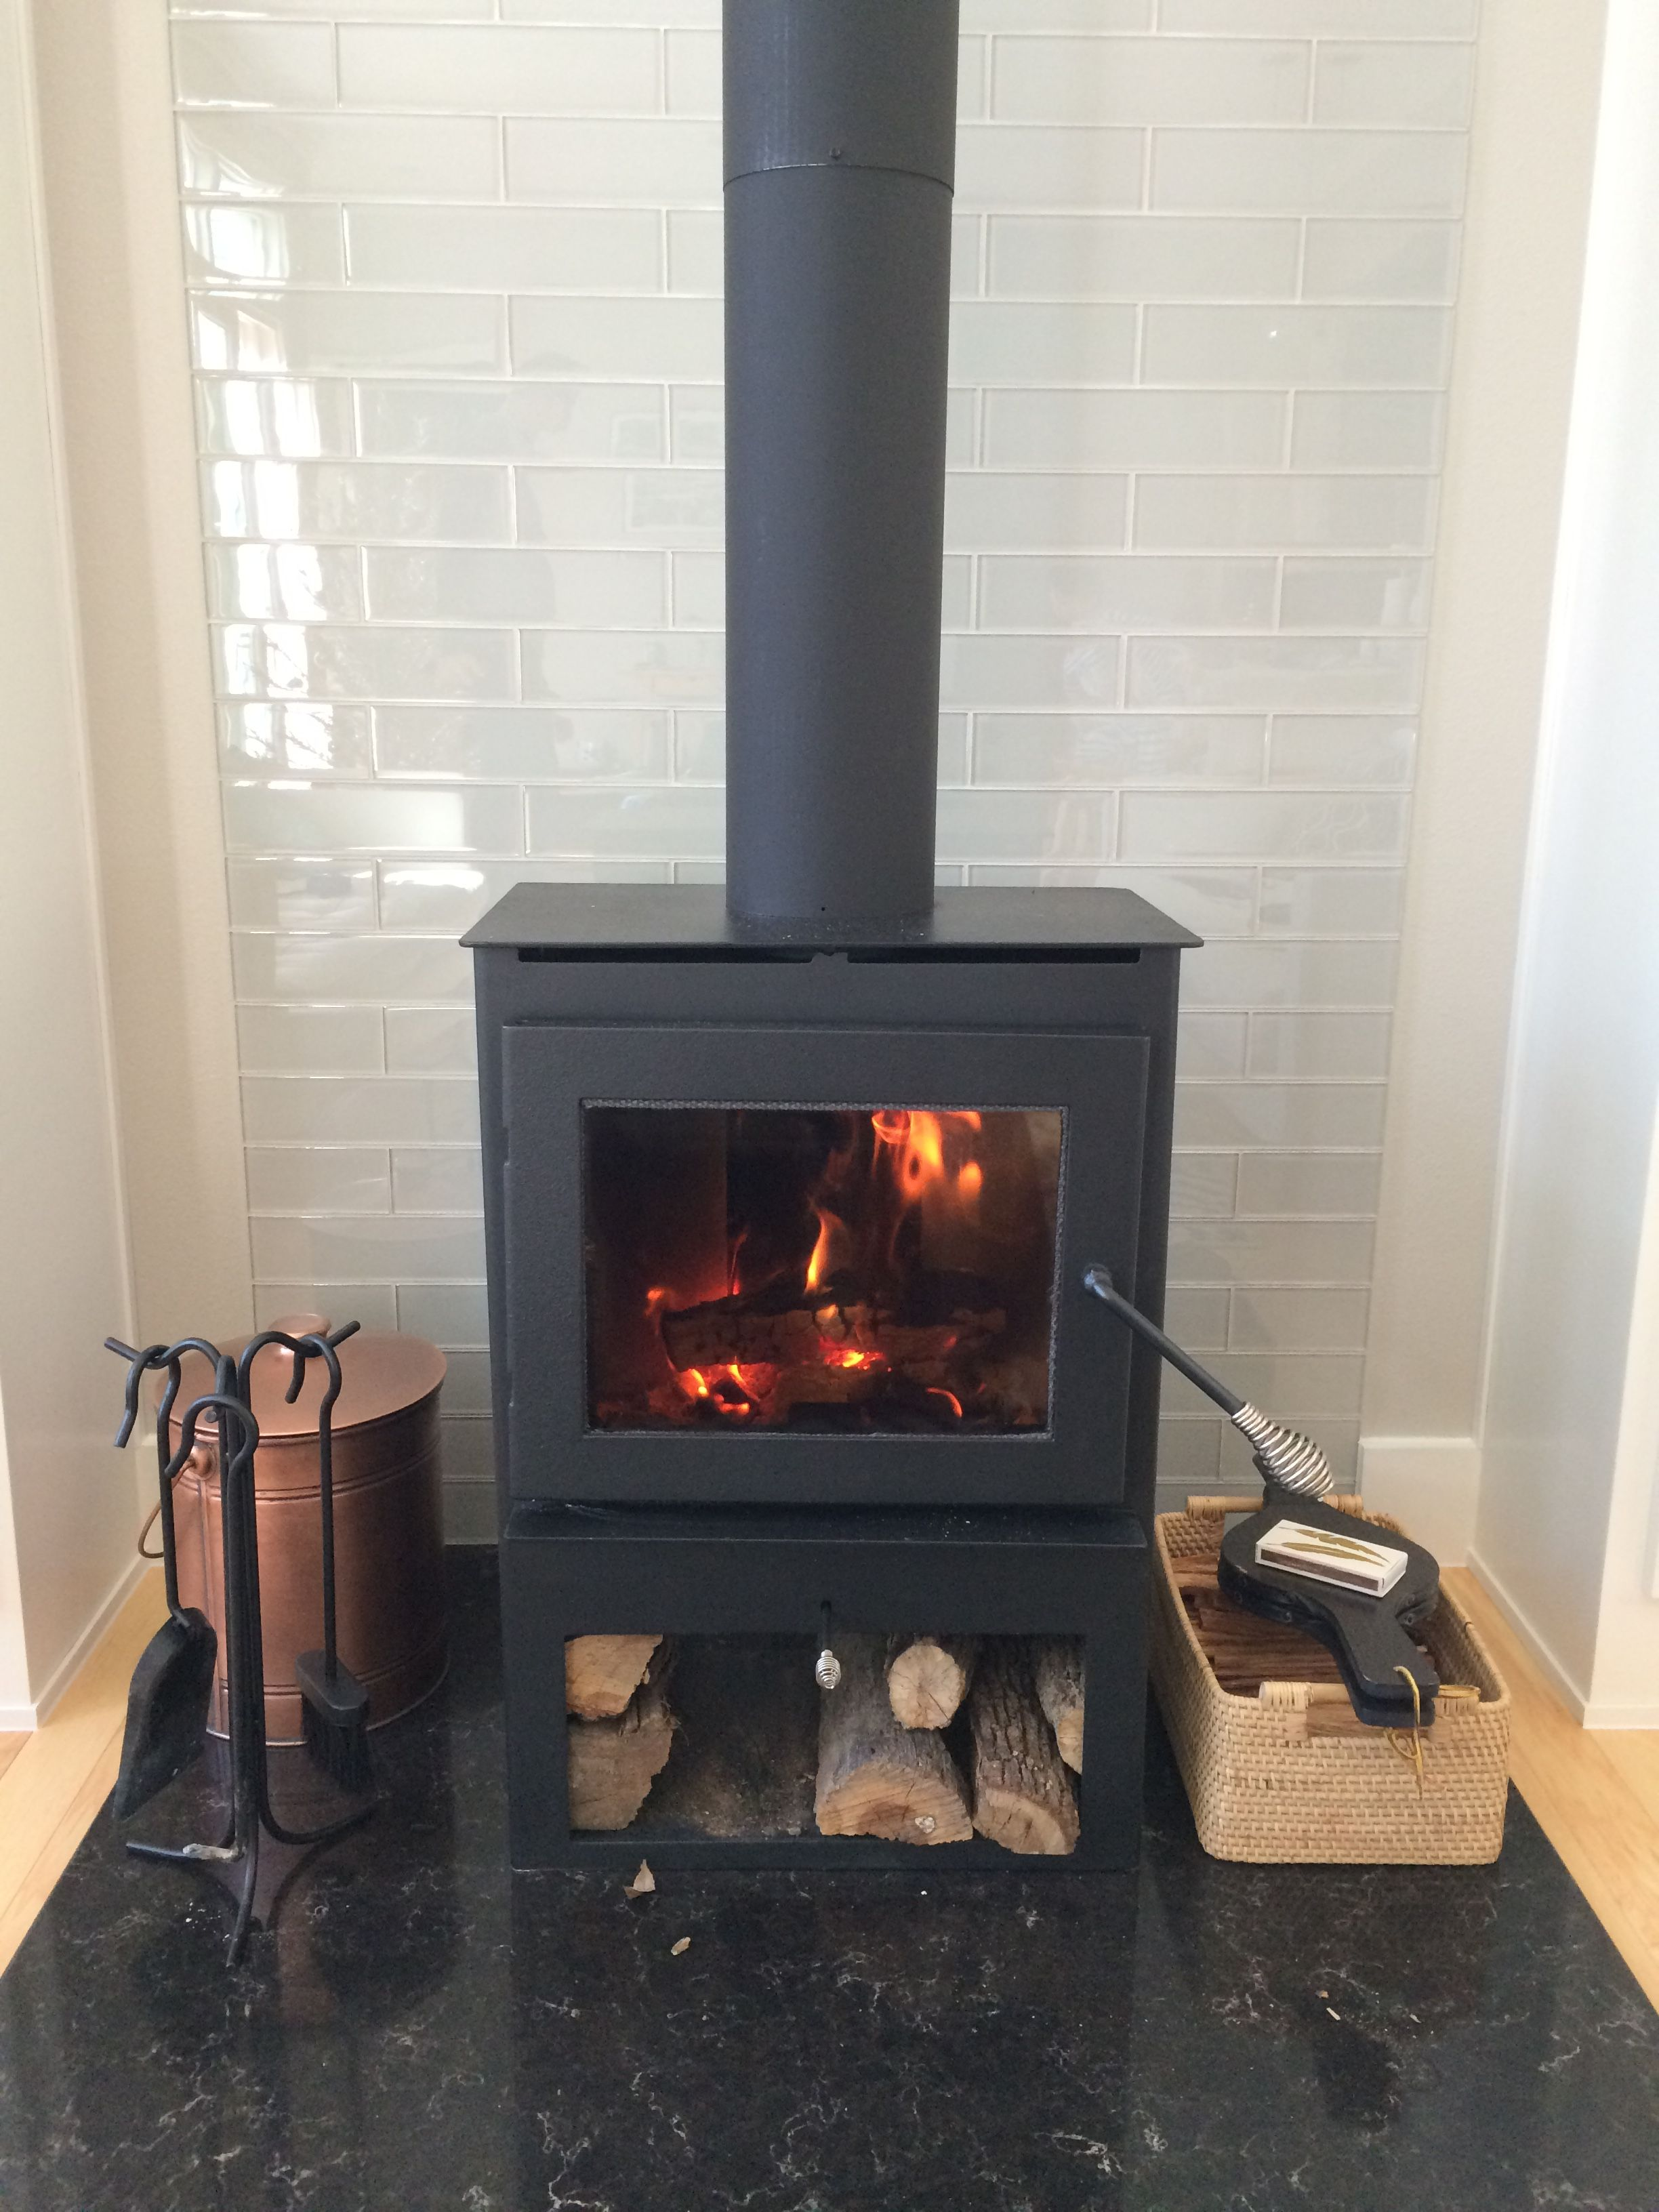 Wood Burning Stove With Glass 3x12 Tile Behind Wood Stove Hearth